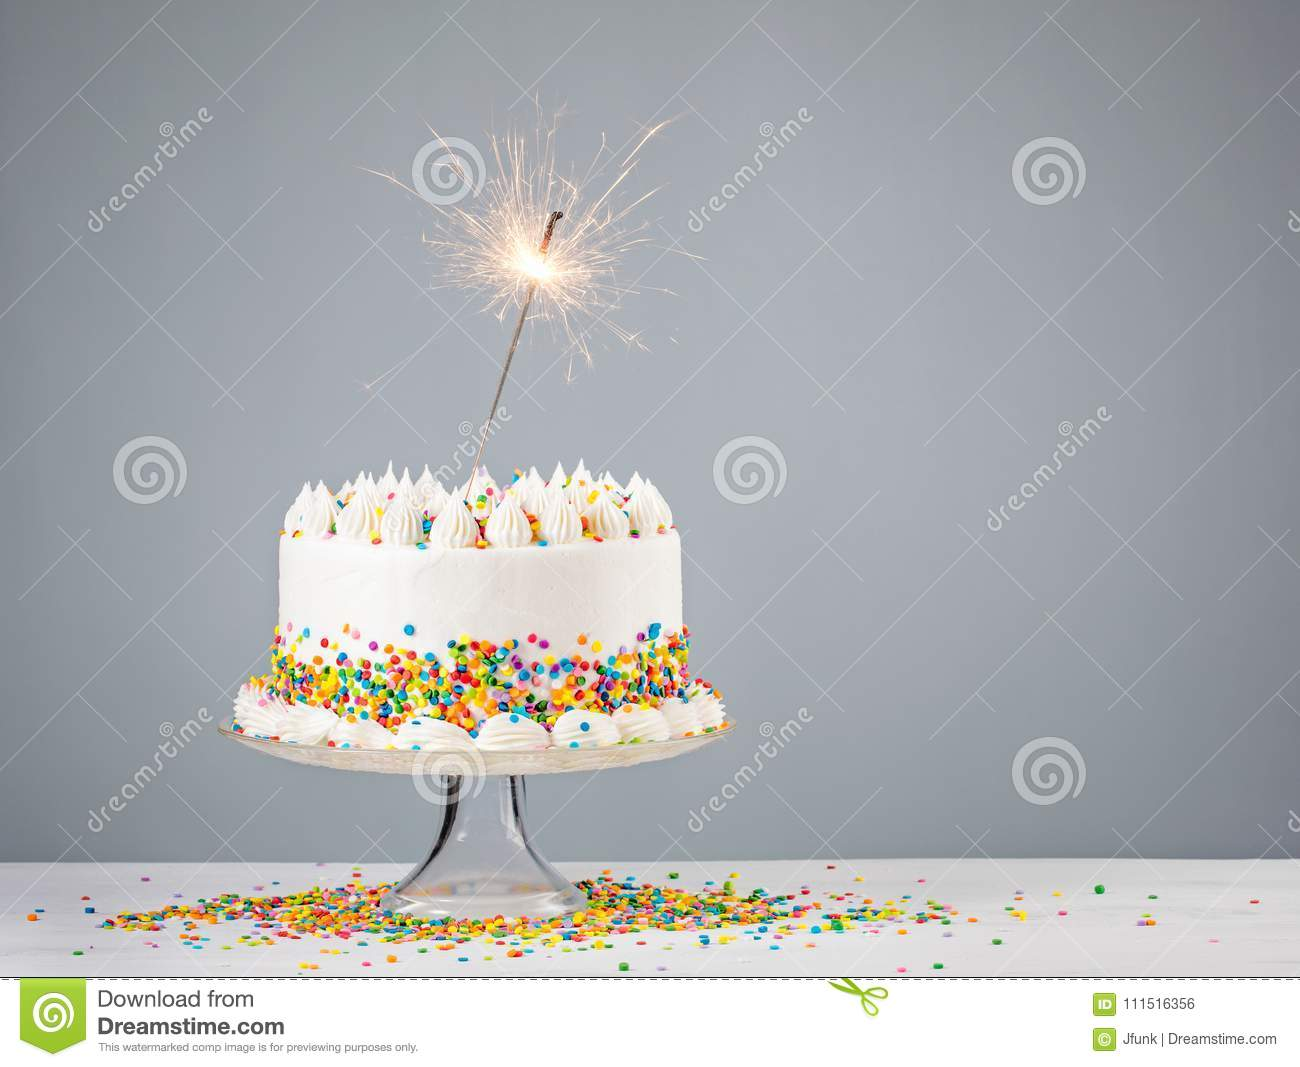 White Birthday Cake With Colorful Sprinkles And Sparkler Over A Neutral Background